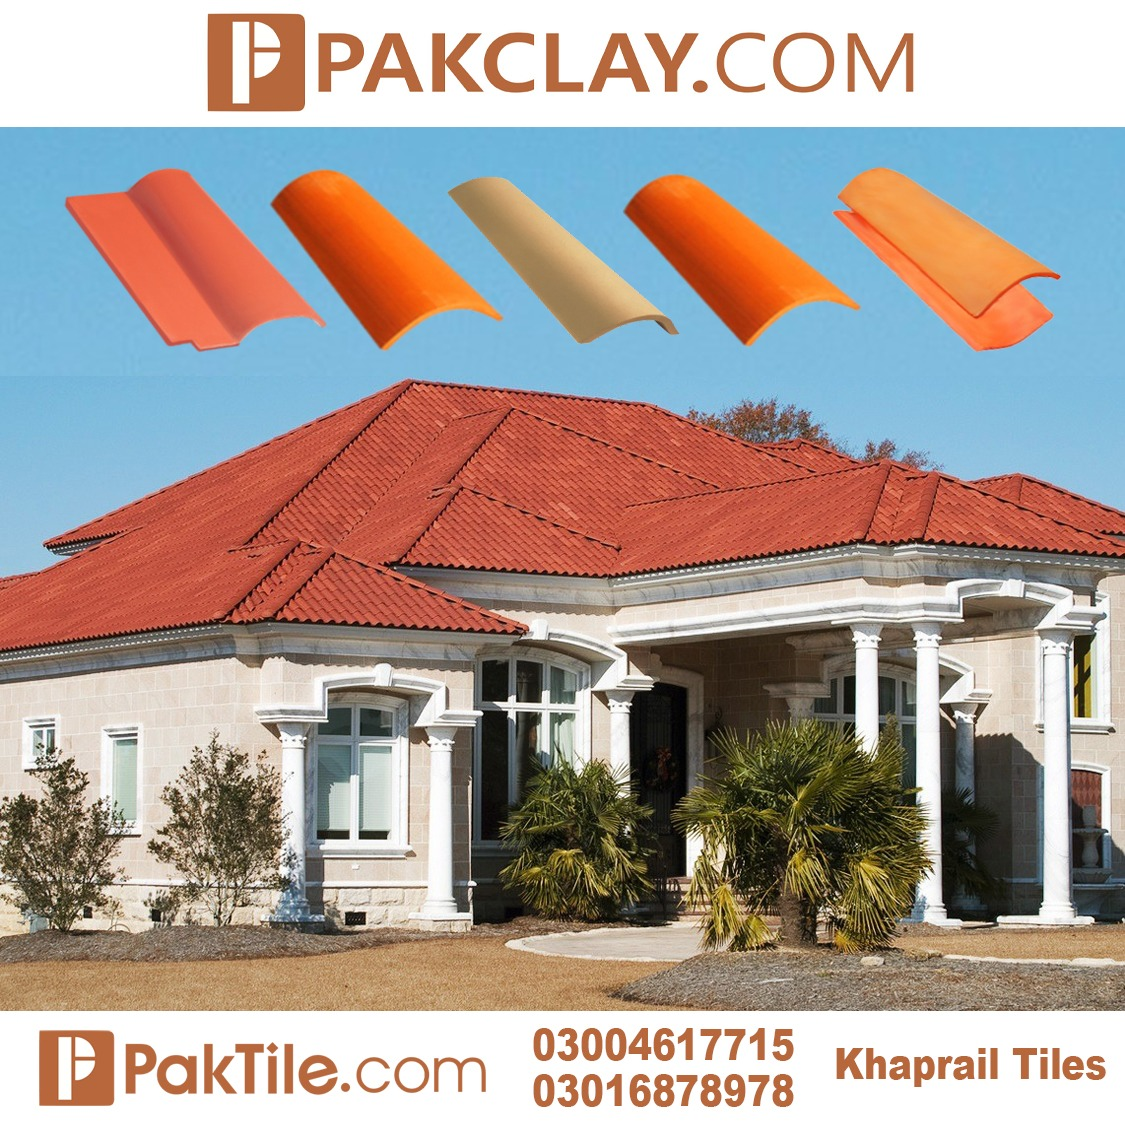 Pak Clay Roof Khaprail Tiles Company in Islamabad